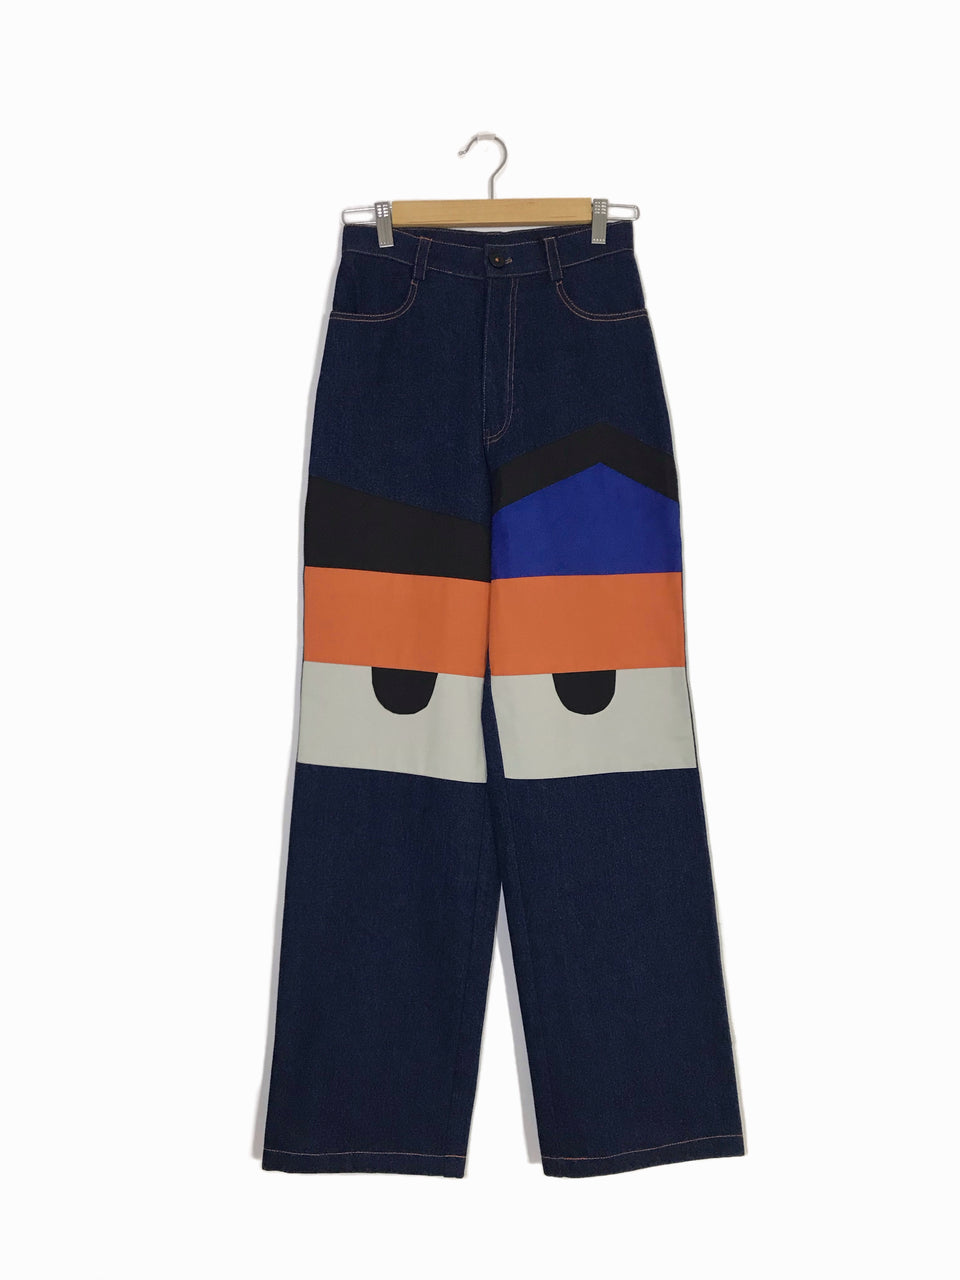 EYE SPY DENIM PANT [UNISEX]